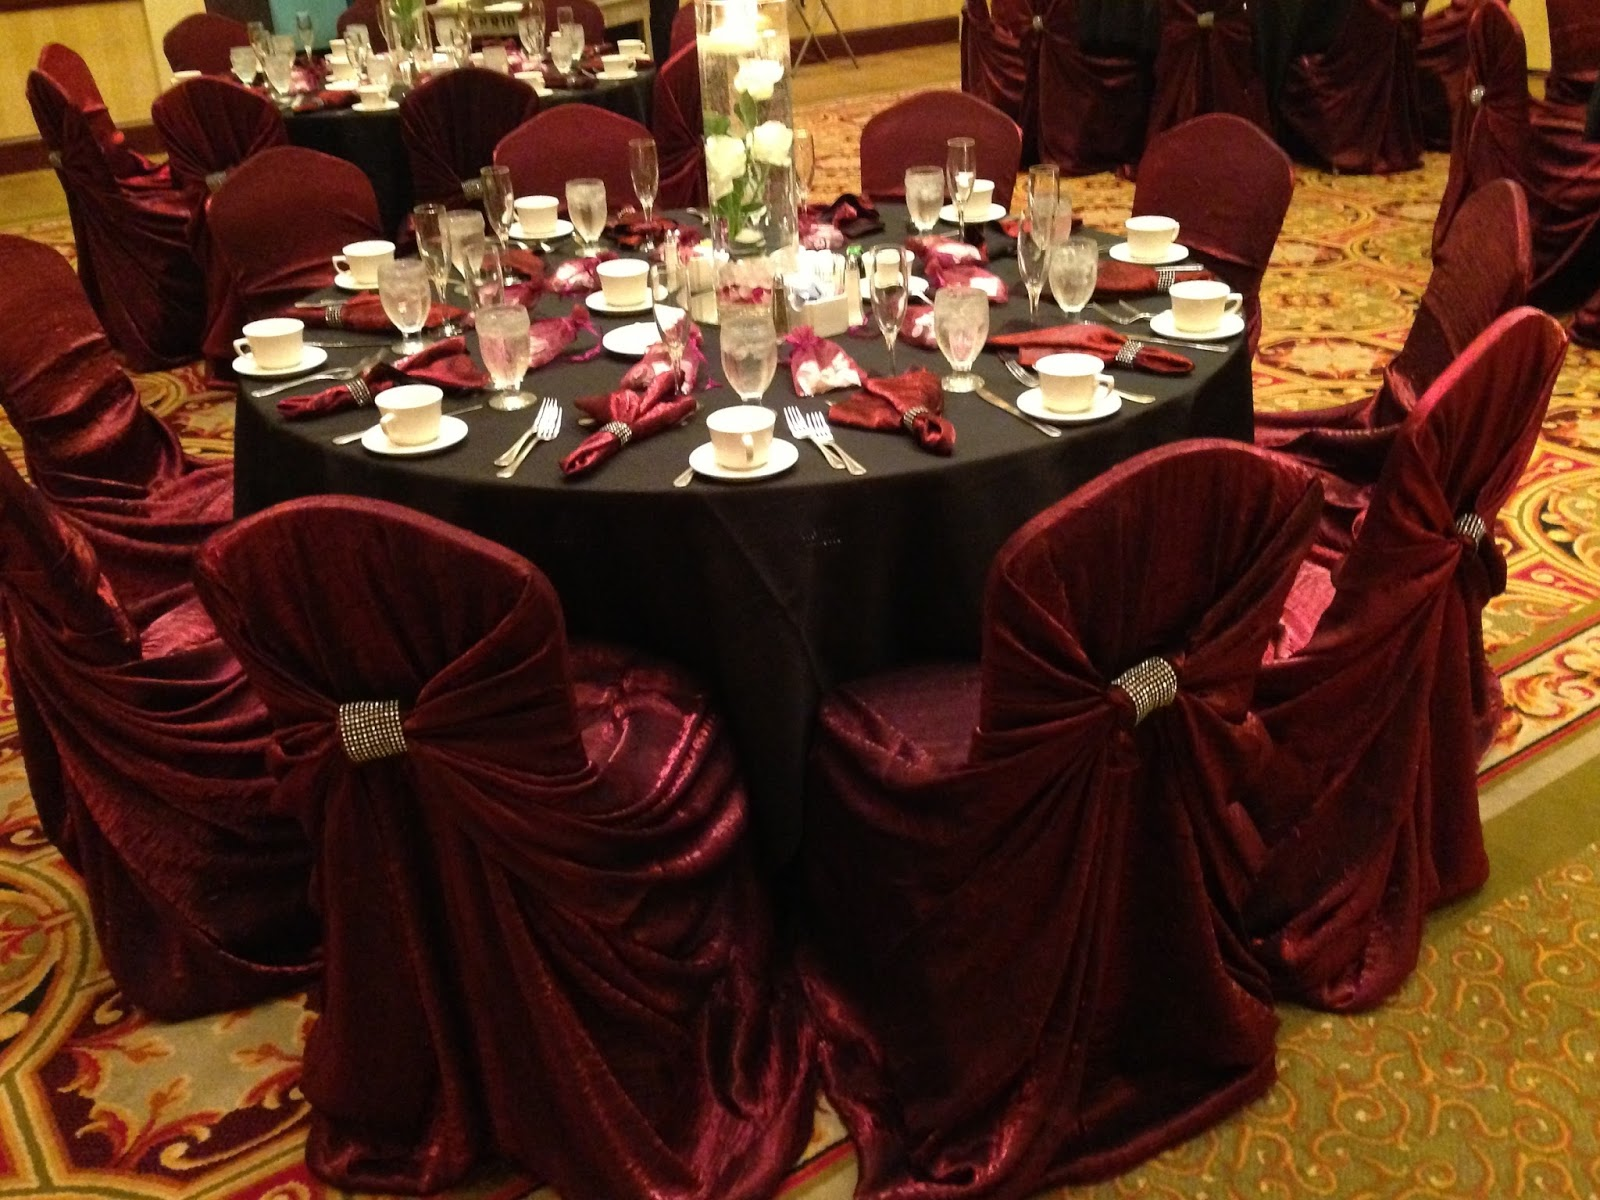 Burgundy Chair Covers Wedding Bedroom And Ottoman Phoenix Marriott Mesa Rachel Tyler S They Decorated With Elegant Floral Water Centerpieces Congratulations